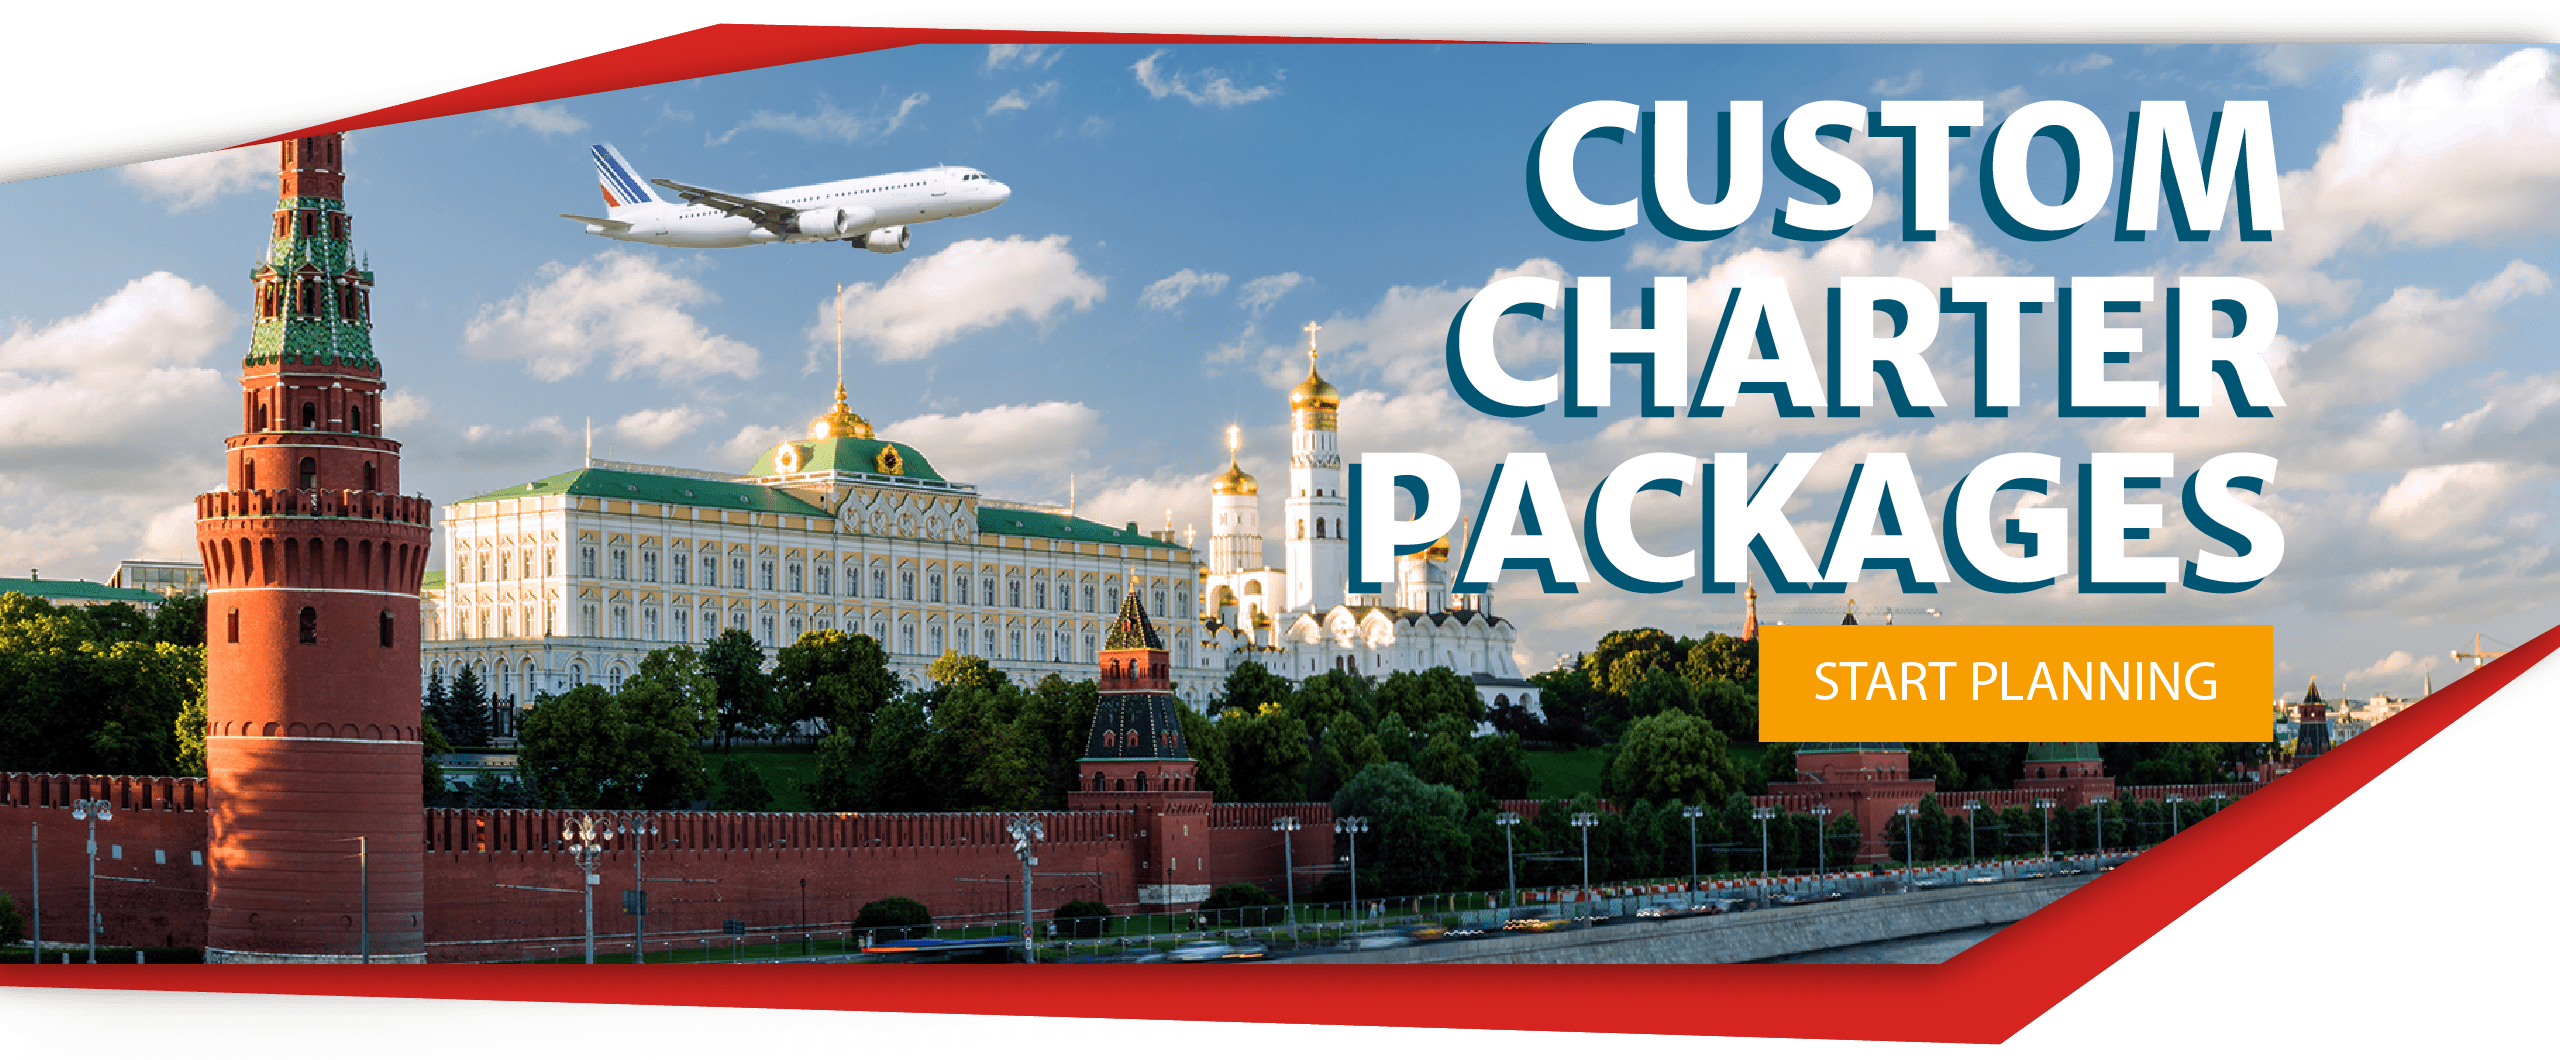 Link to contact form on a picture of russia advertising custom charter packages